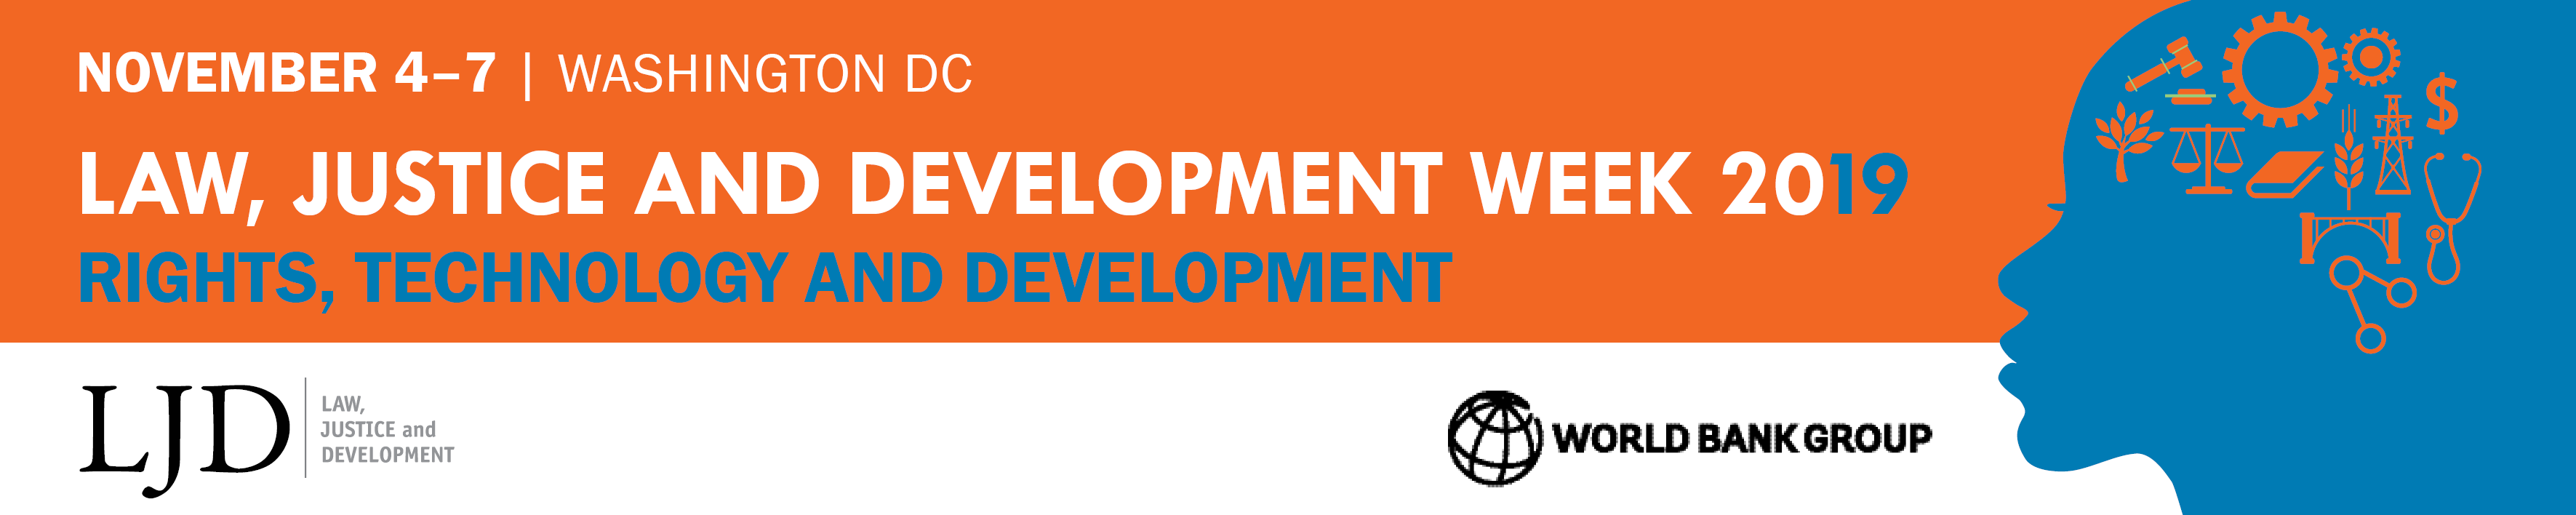 Law, Justice and Development Week 2019